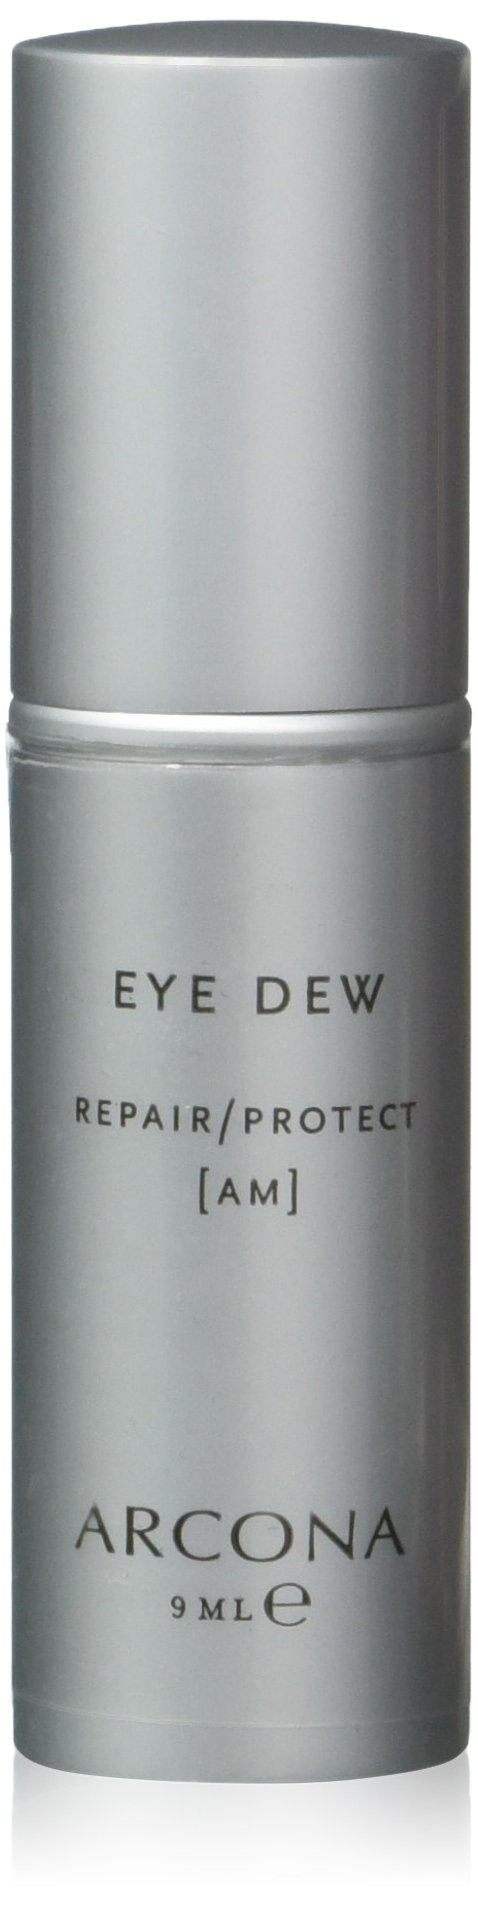 ARCONA Eye Dew, Repair/Protect AM .3 oz (9 ml)